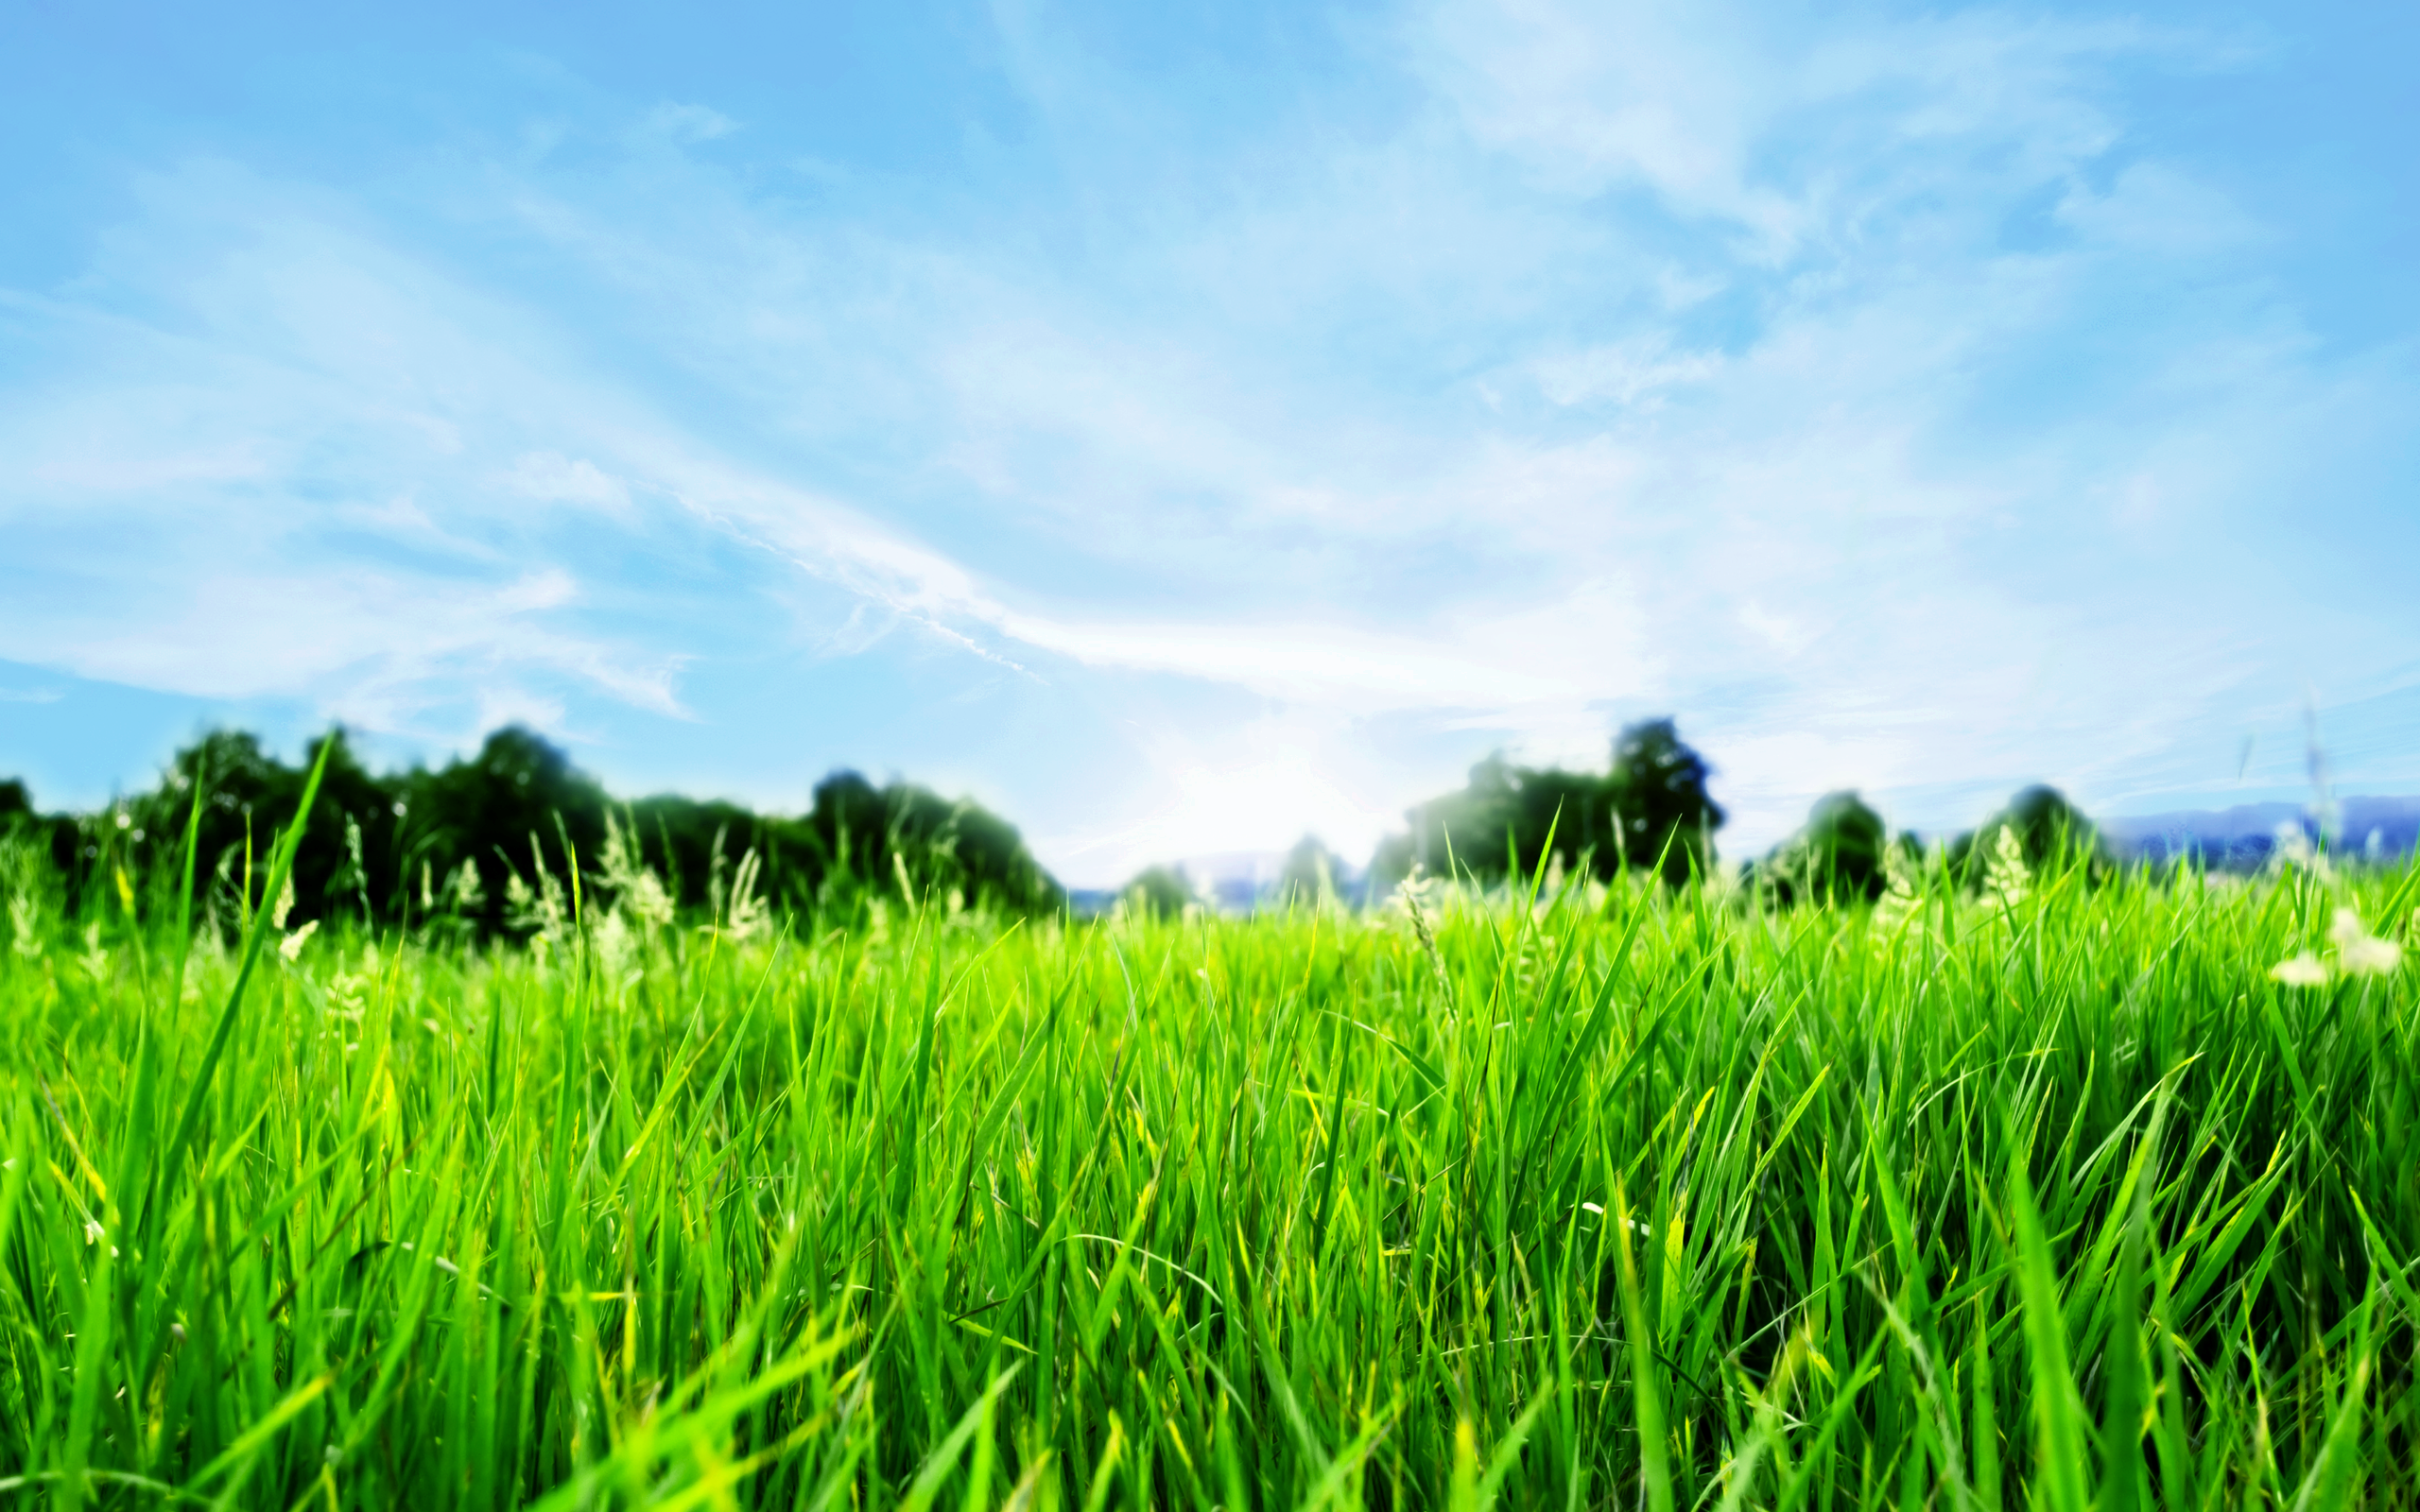 Nature Grass Wallpaper